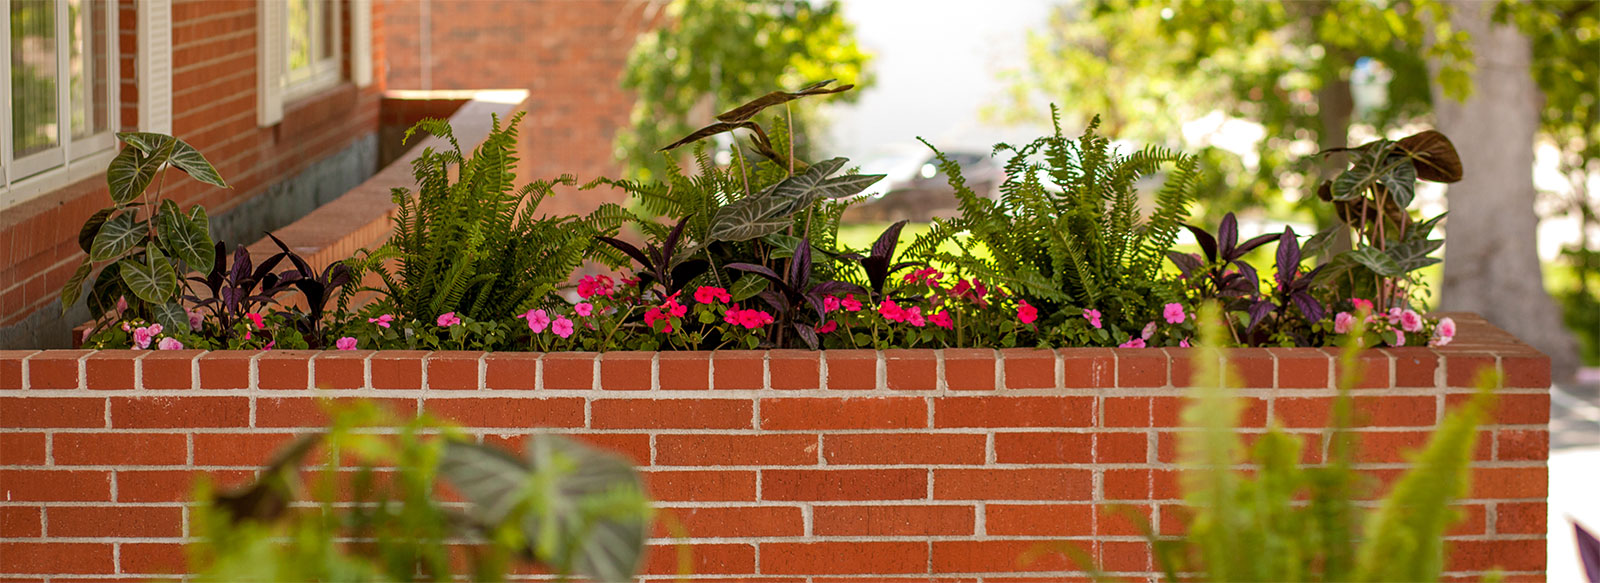 Lawn Maintenance Services   Rost Landscaping